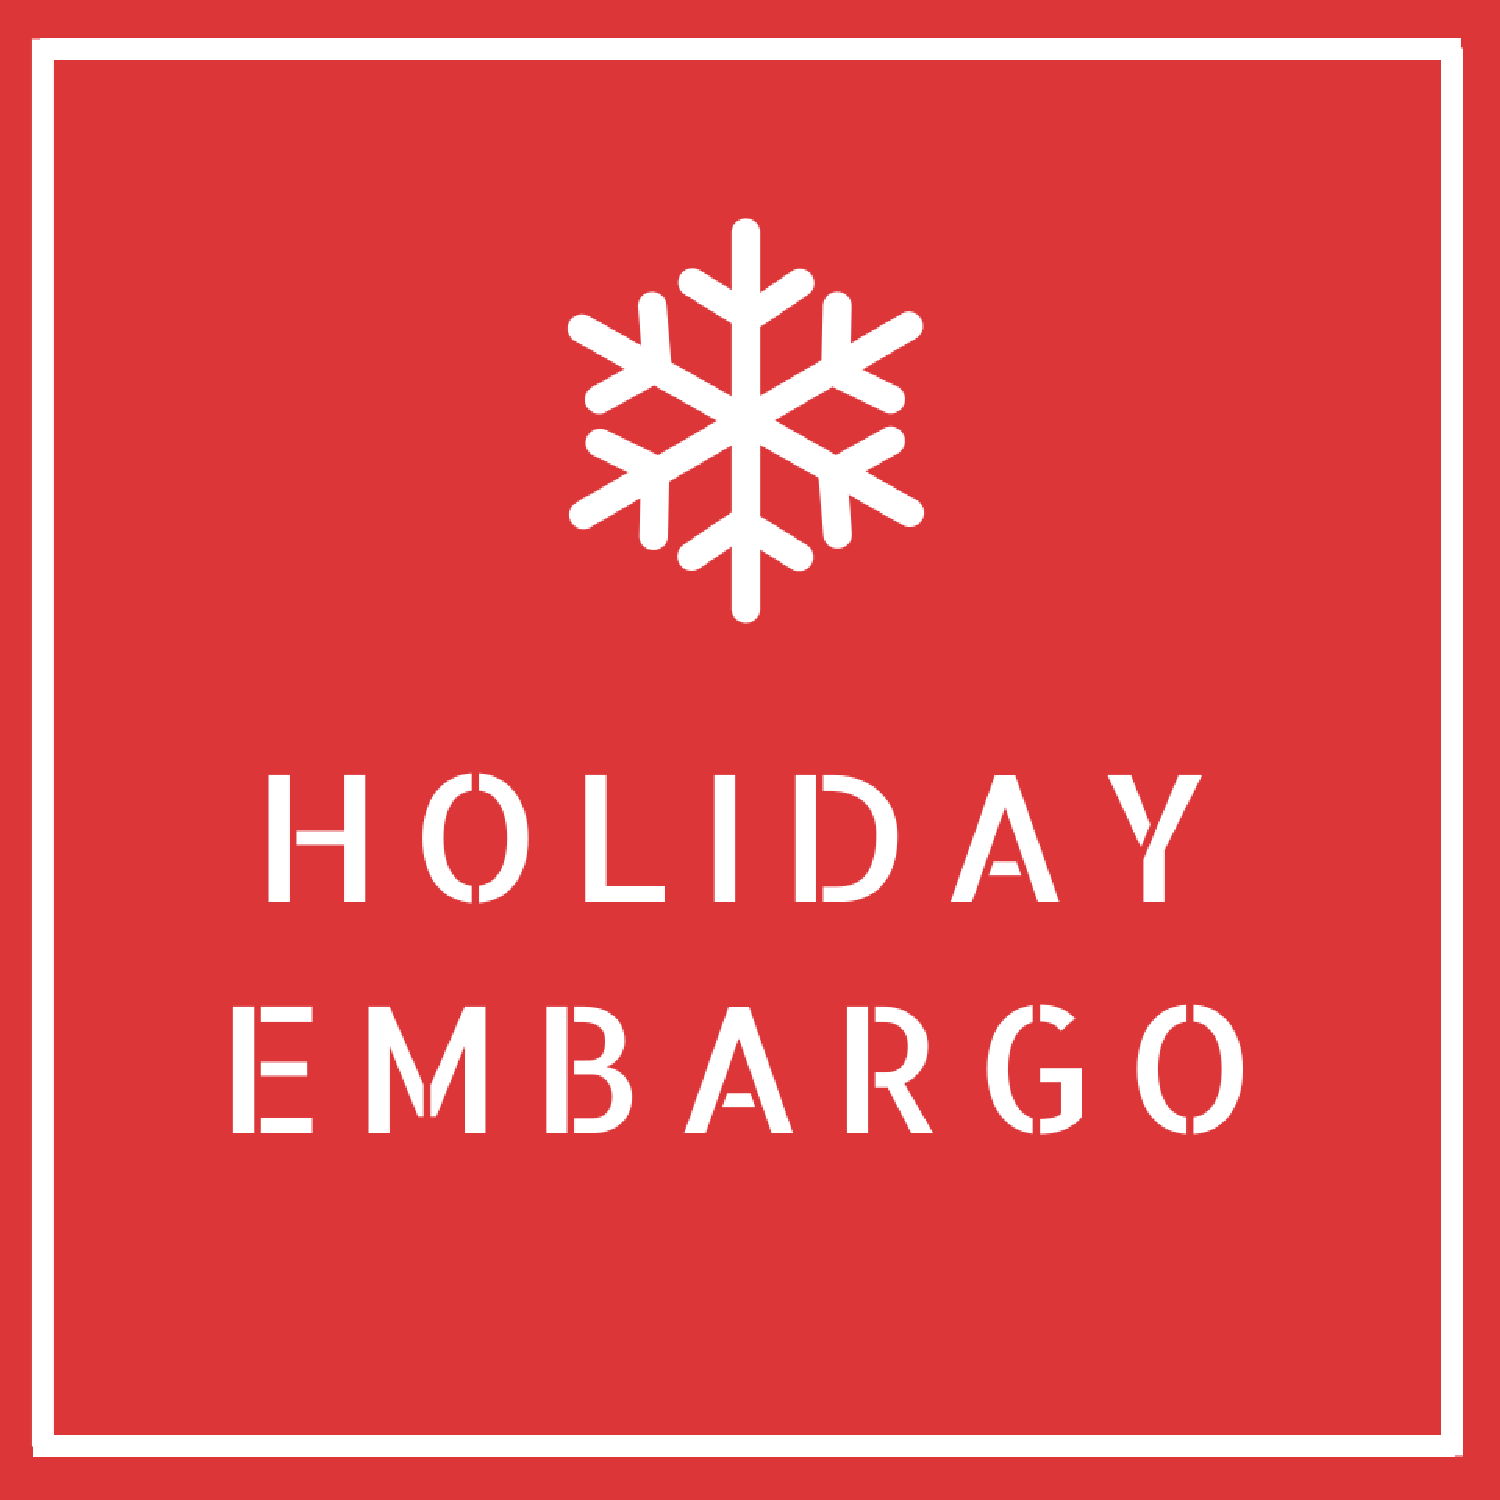 Red background with white snowflake and holiday embargo underneath